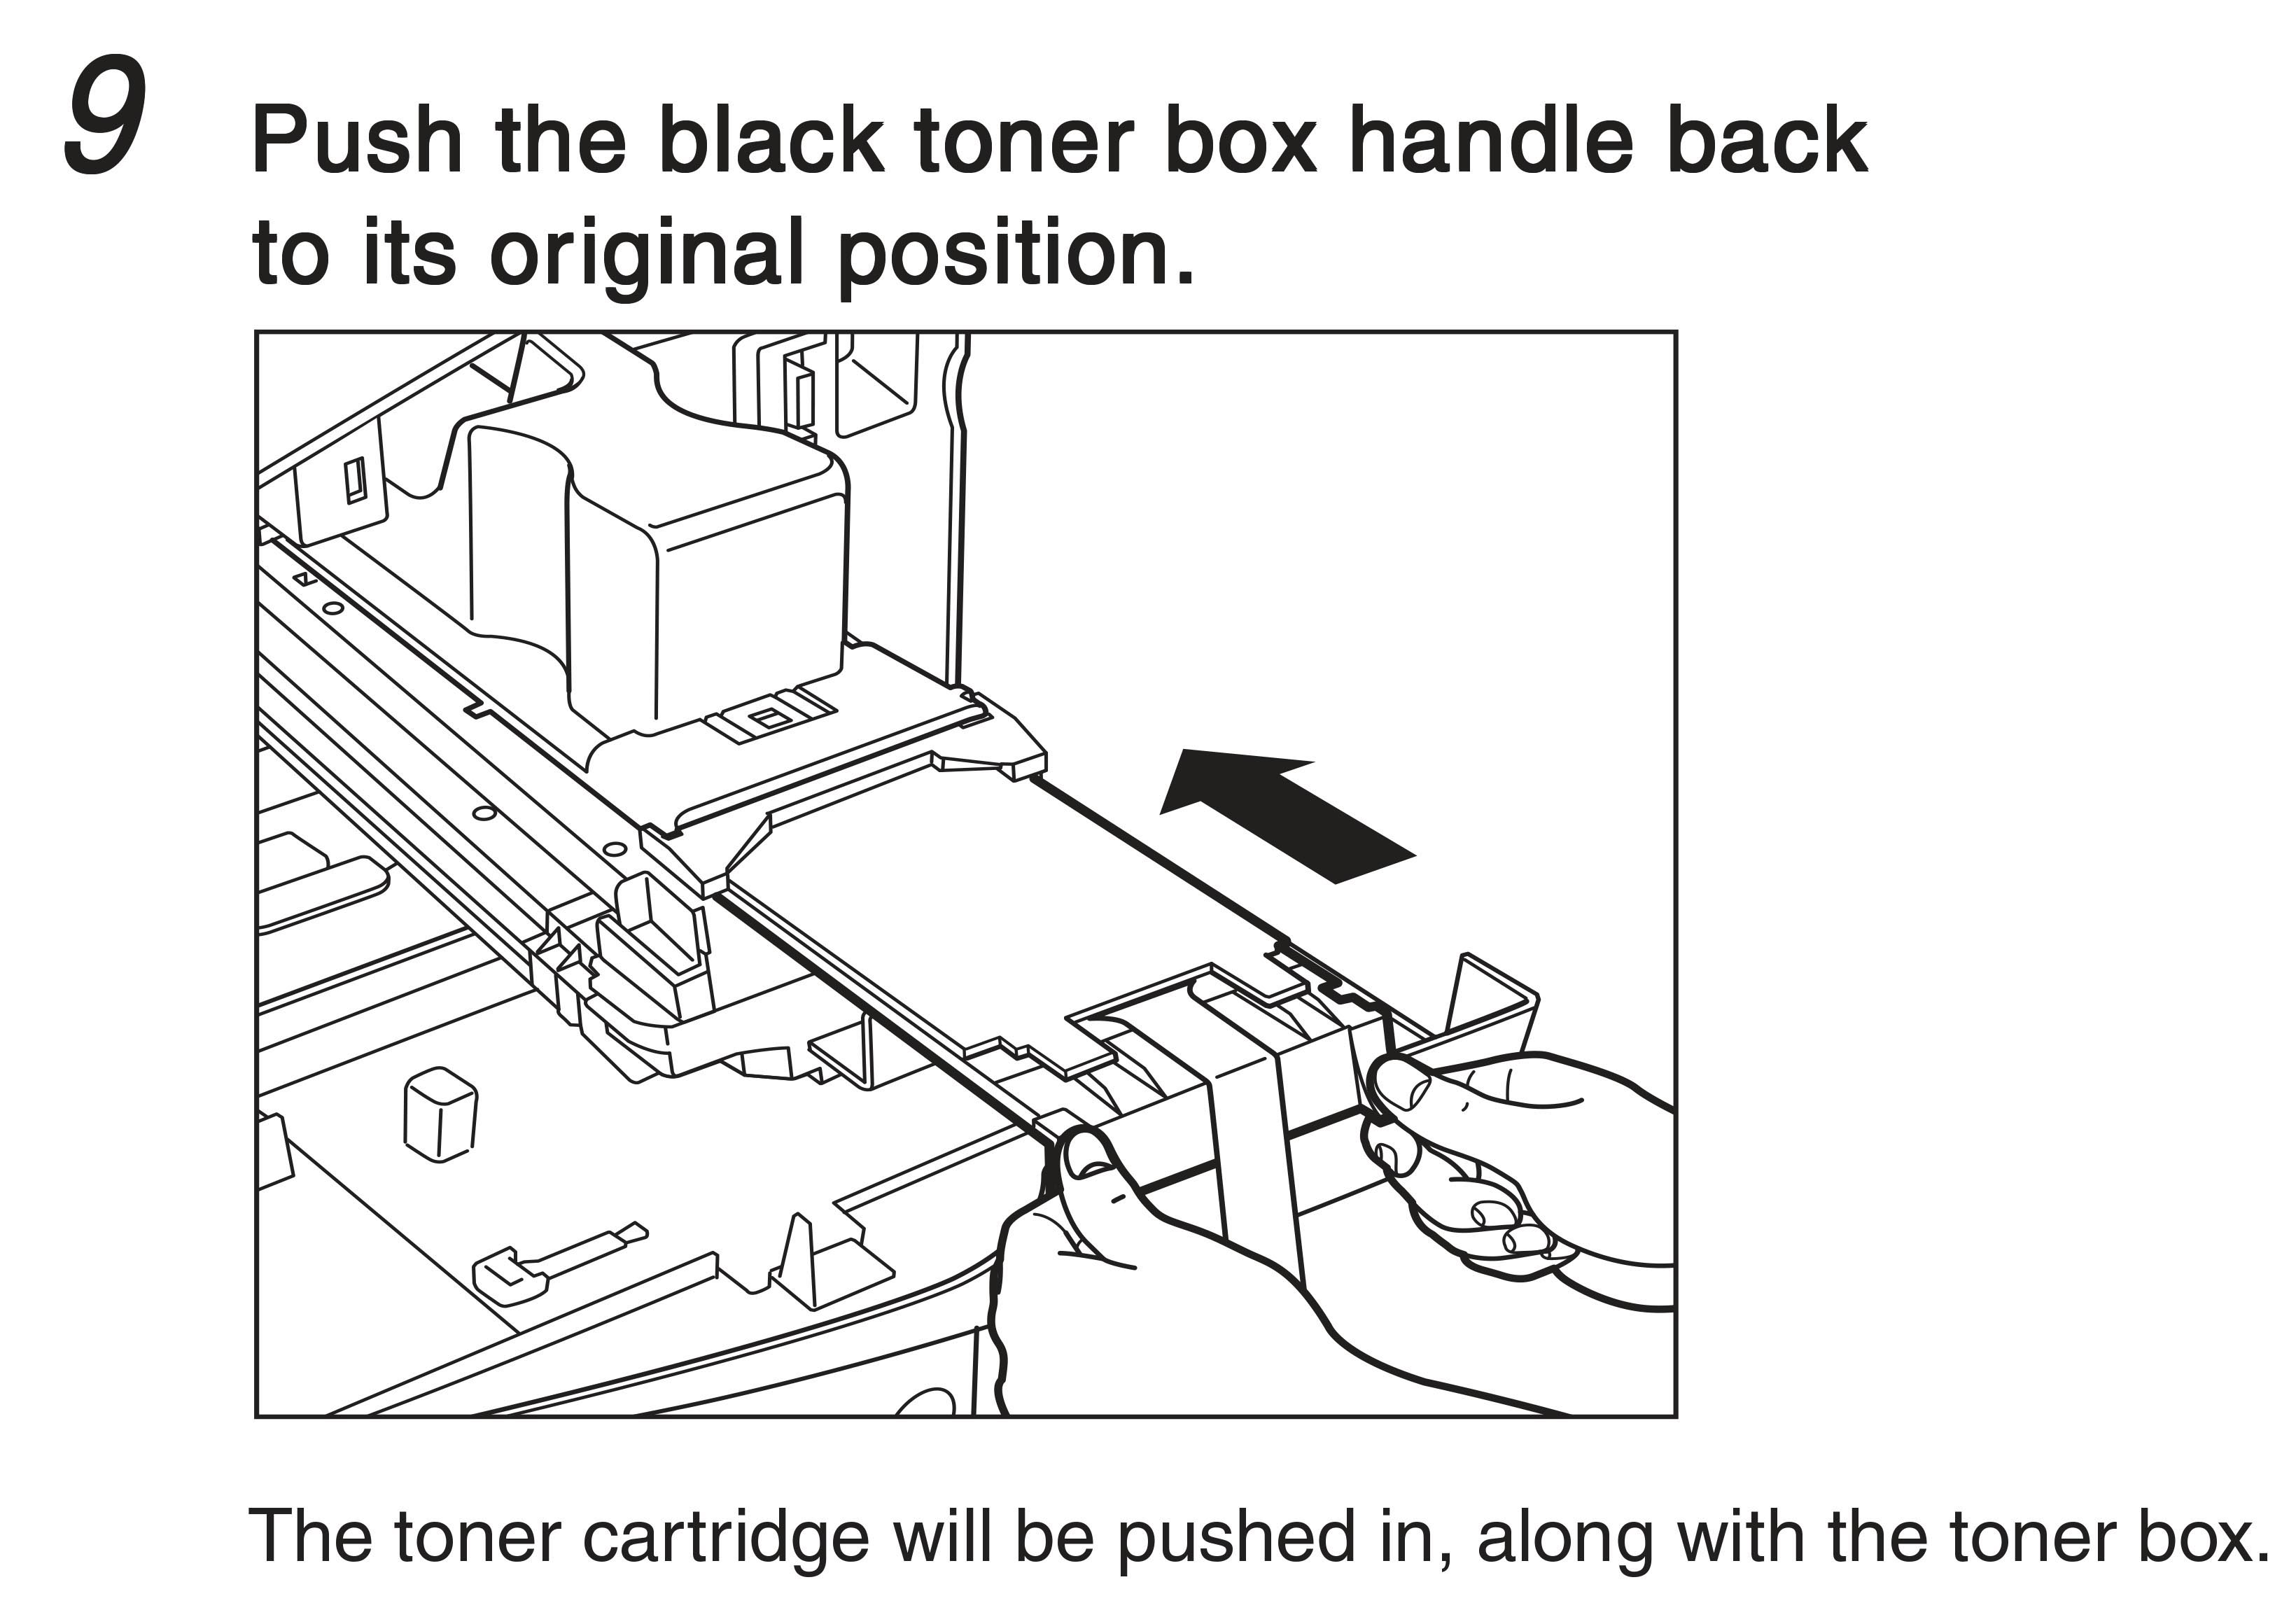 9. Push the black toner box handle back to its original position. The tonar cartridge will be pushed in, along with the toner box.